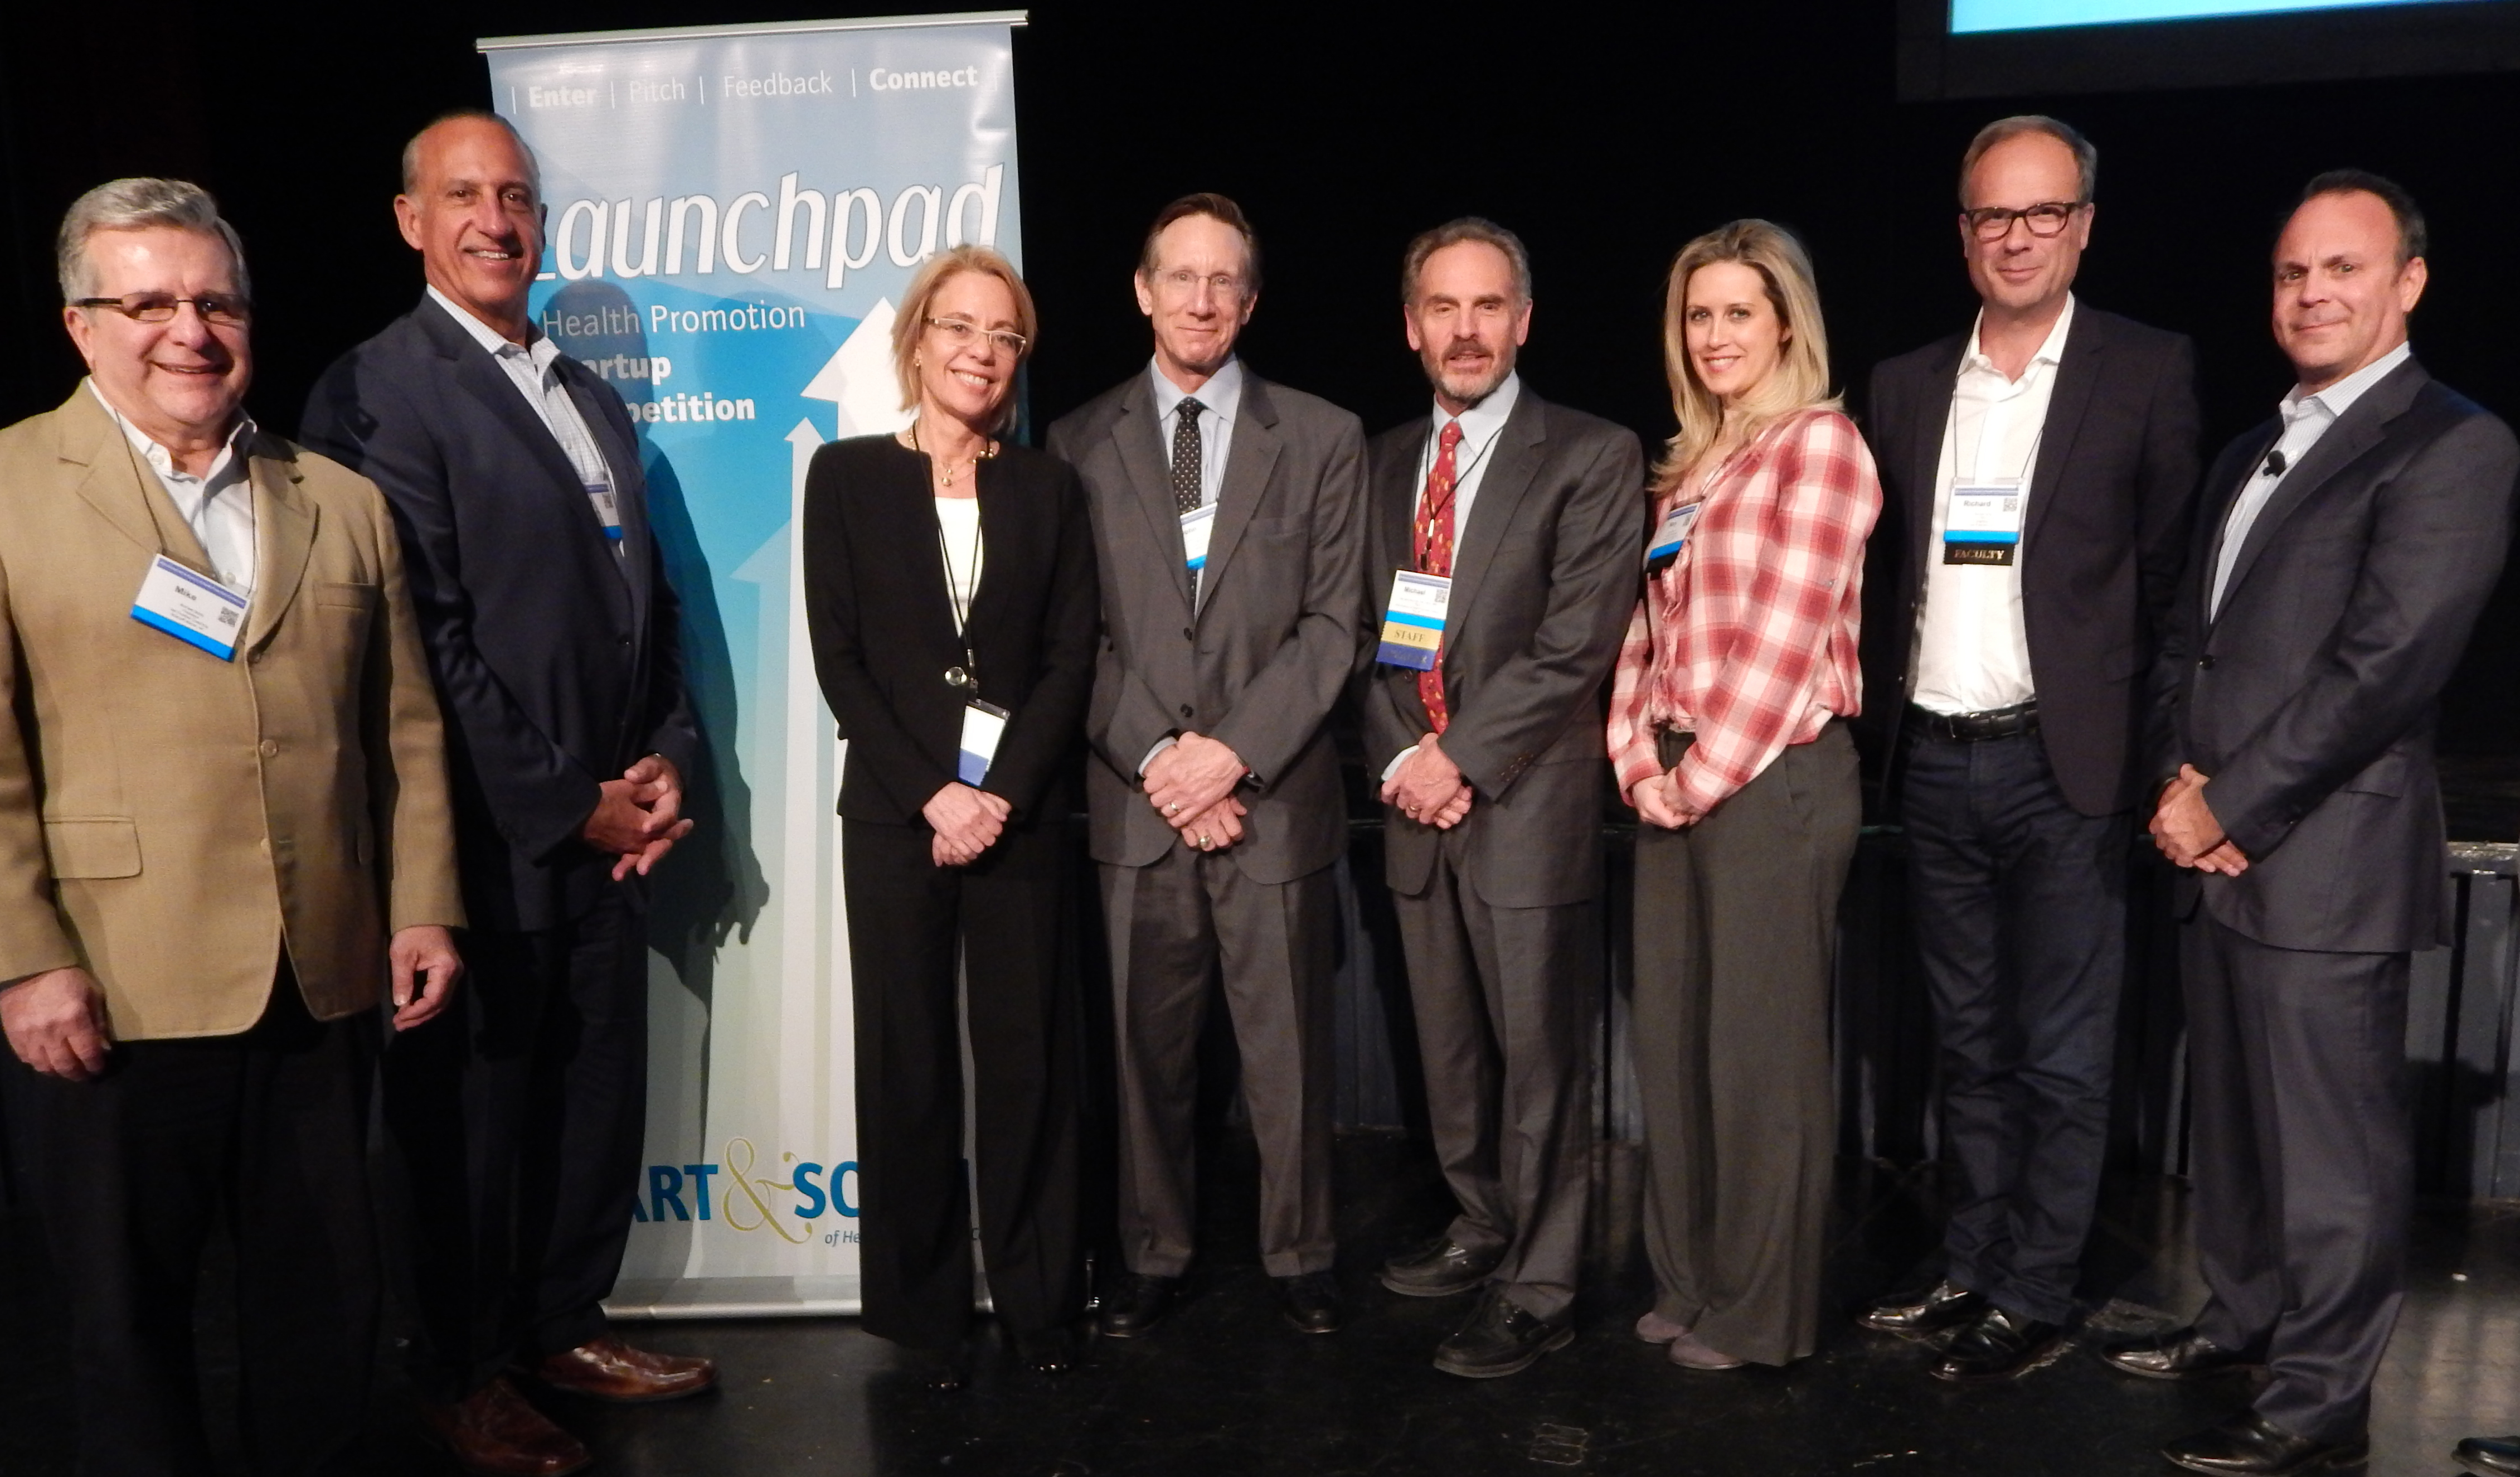 Winners of the from right to left: Hunter Howard, Mike Motta, Mark Correia, Margaret Moore, John Harris, Michael O'Donnell, Mary Gillis, James Hummer (Courtesy of: Hormone Therapeutics)